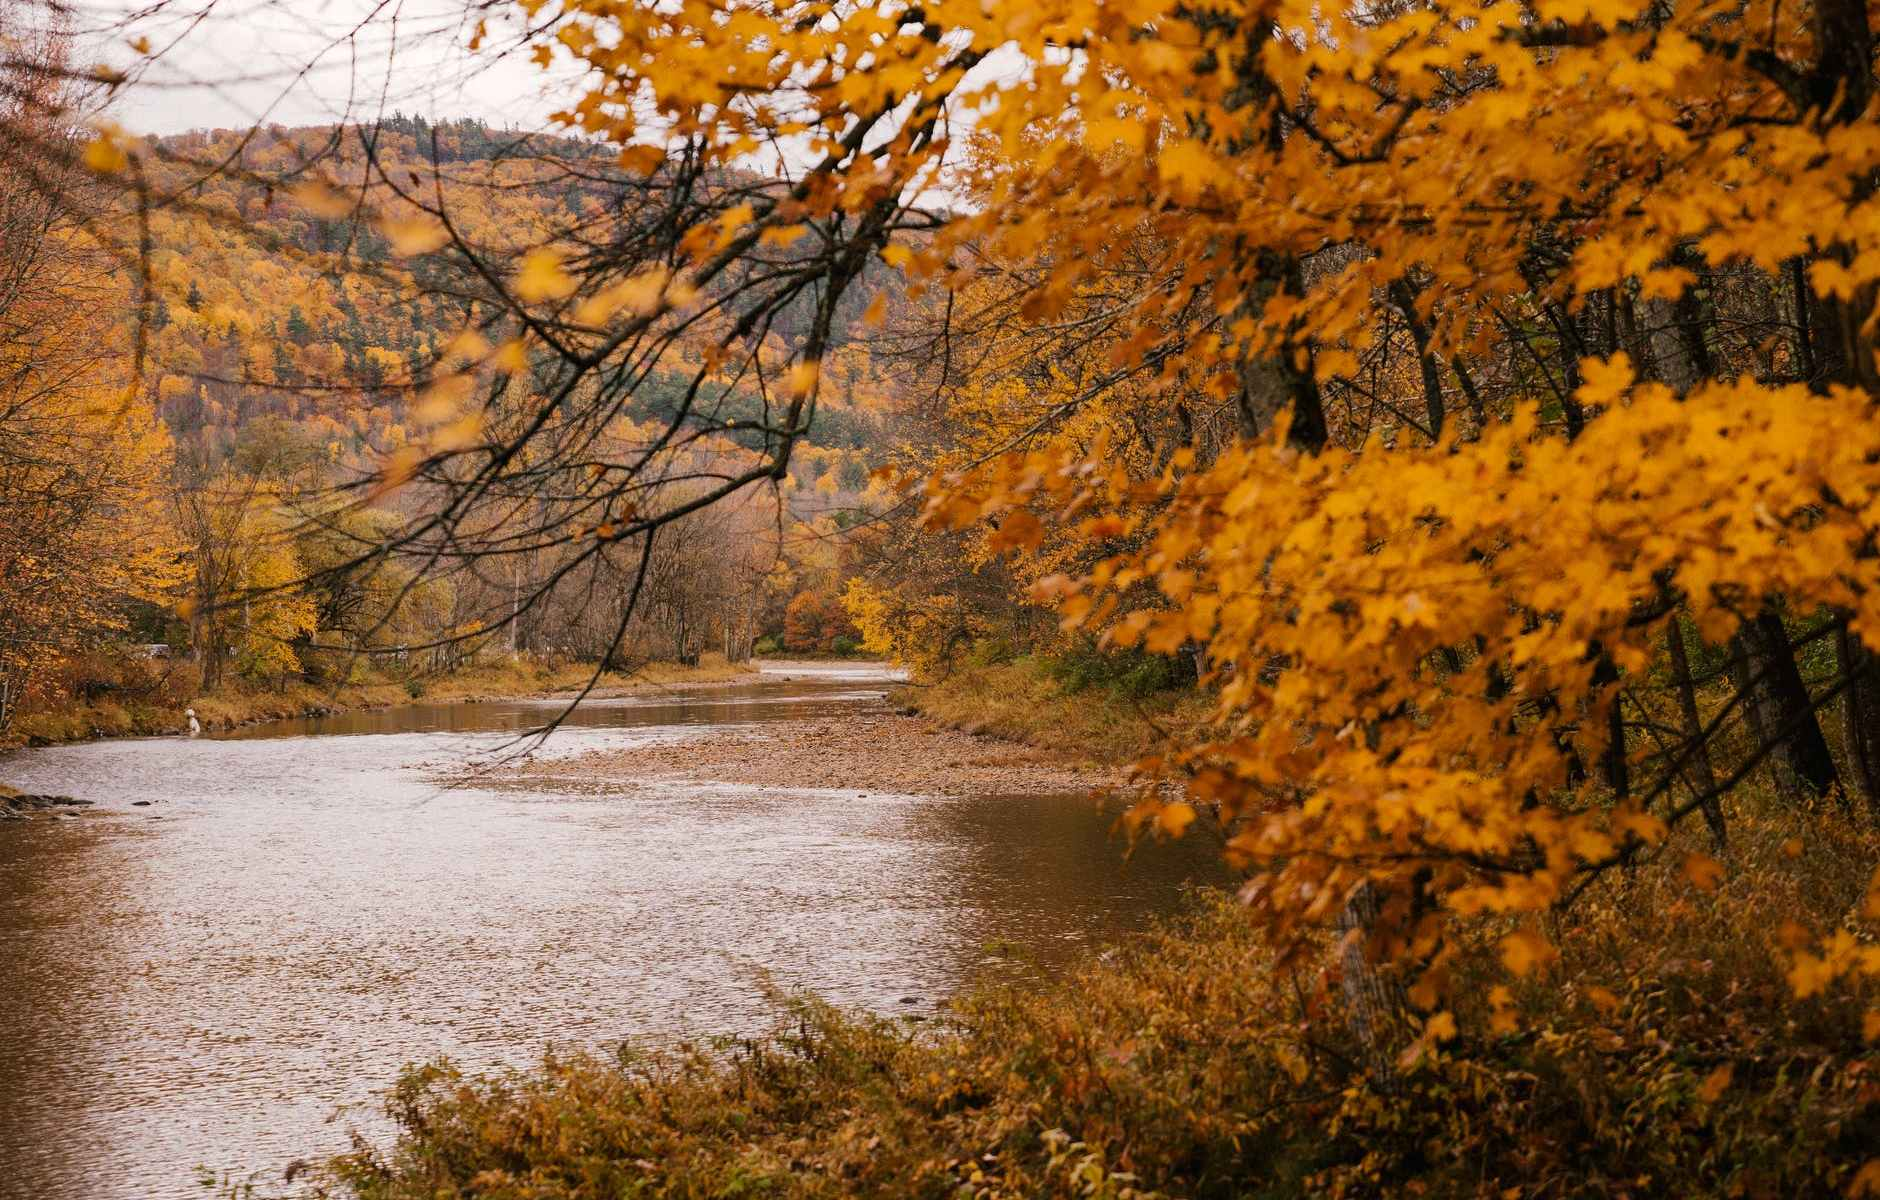 scenic autumn forest with curvy river